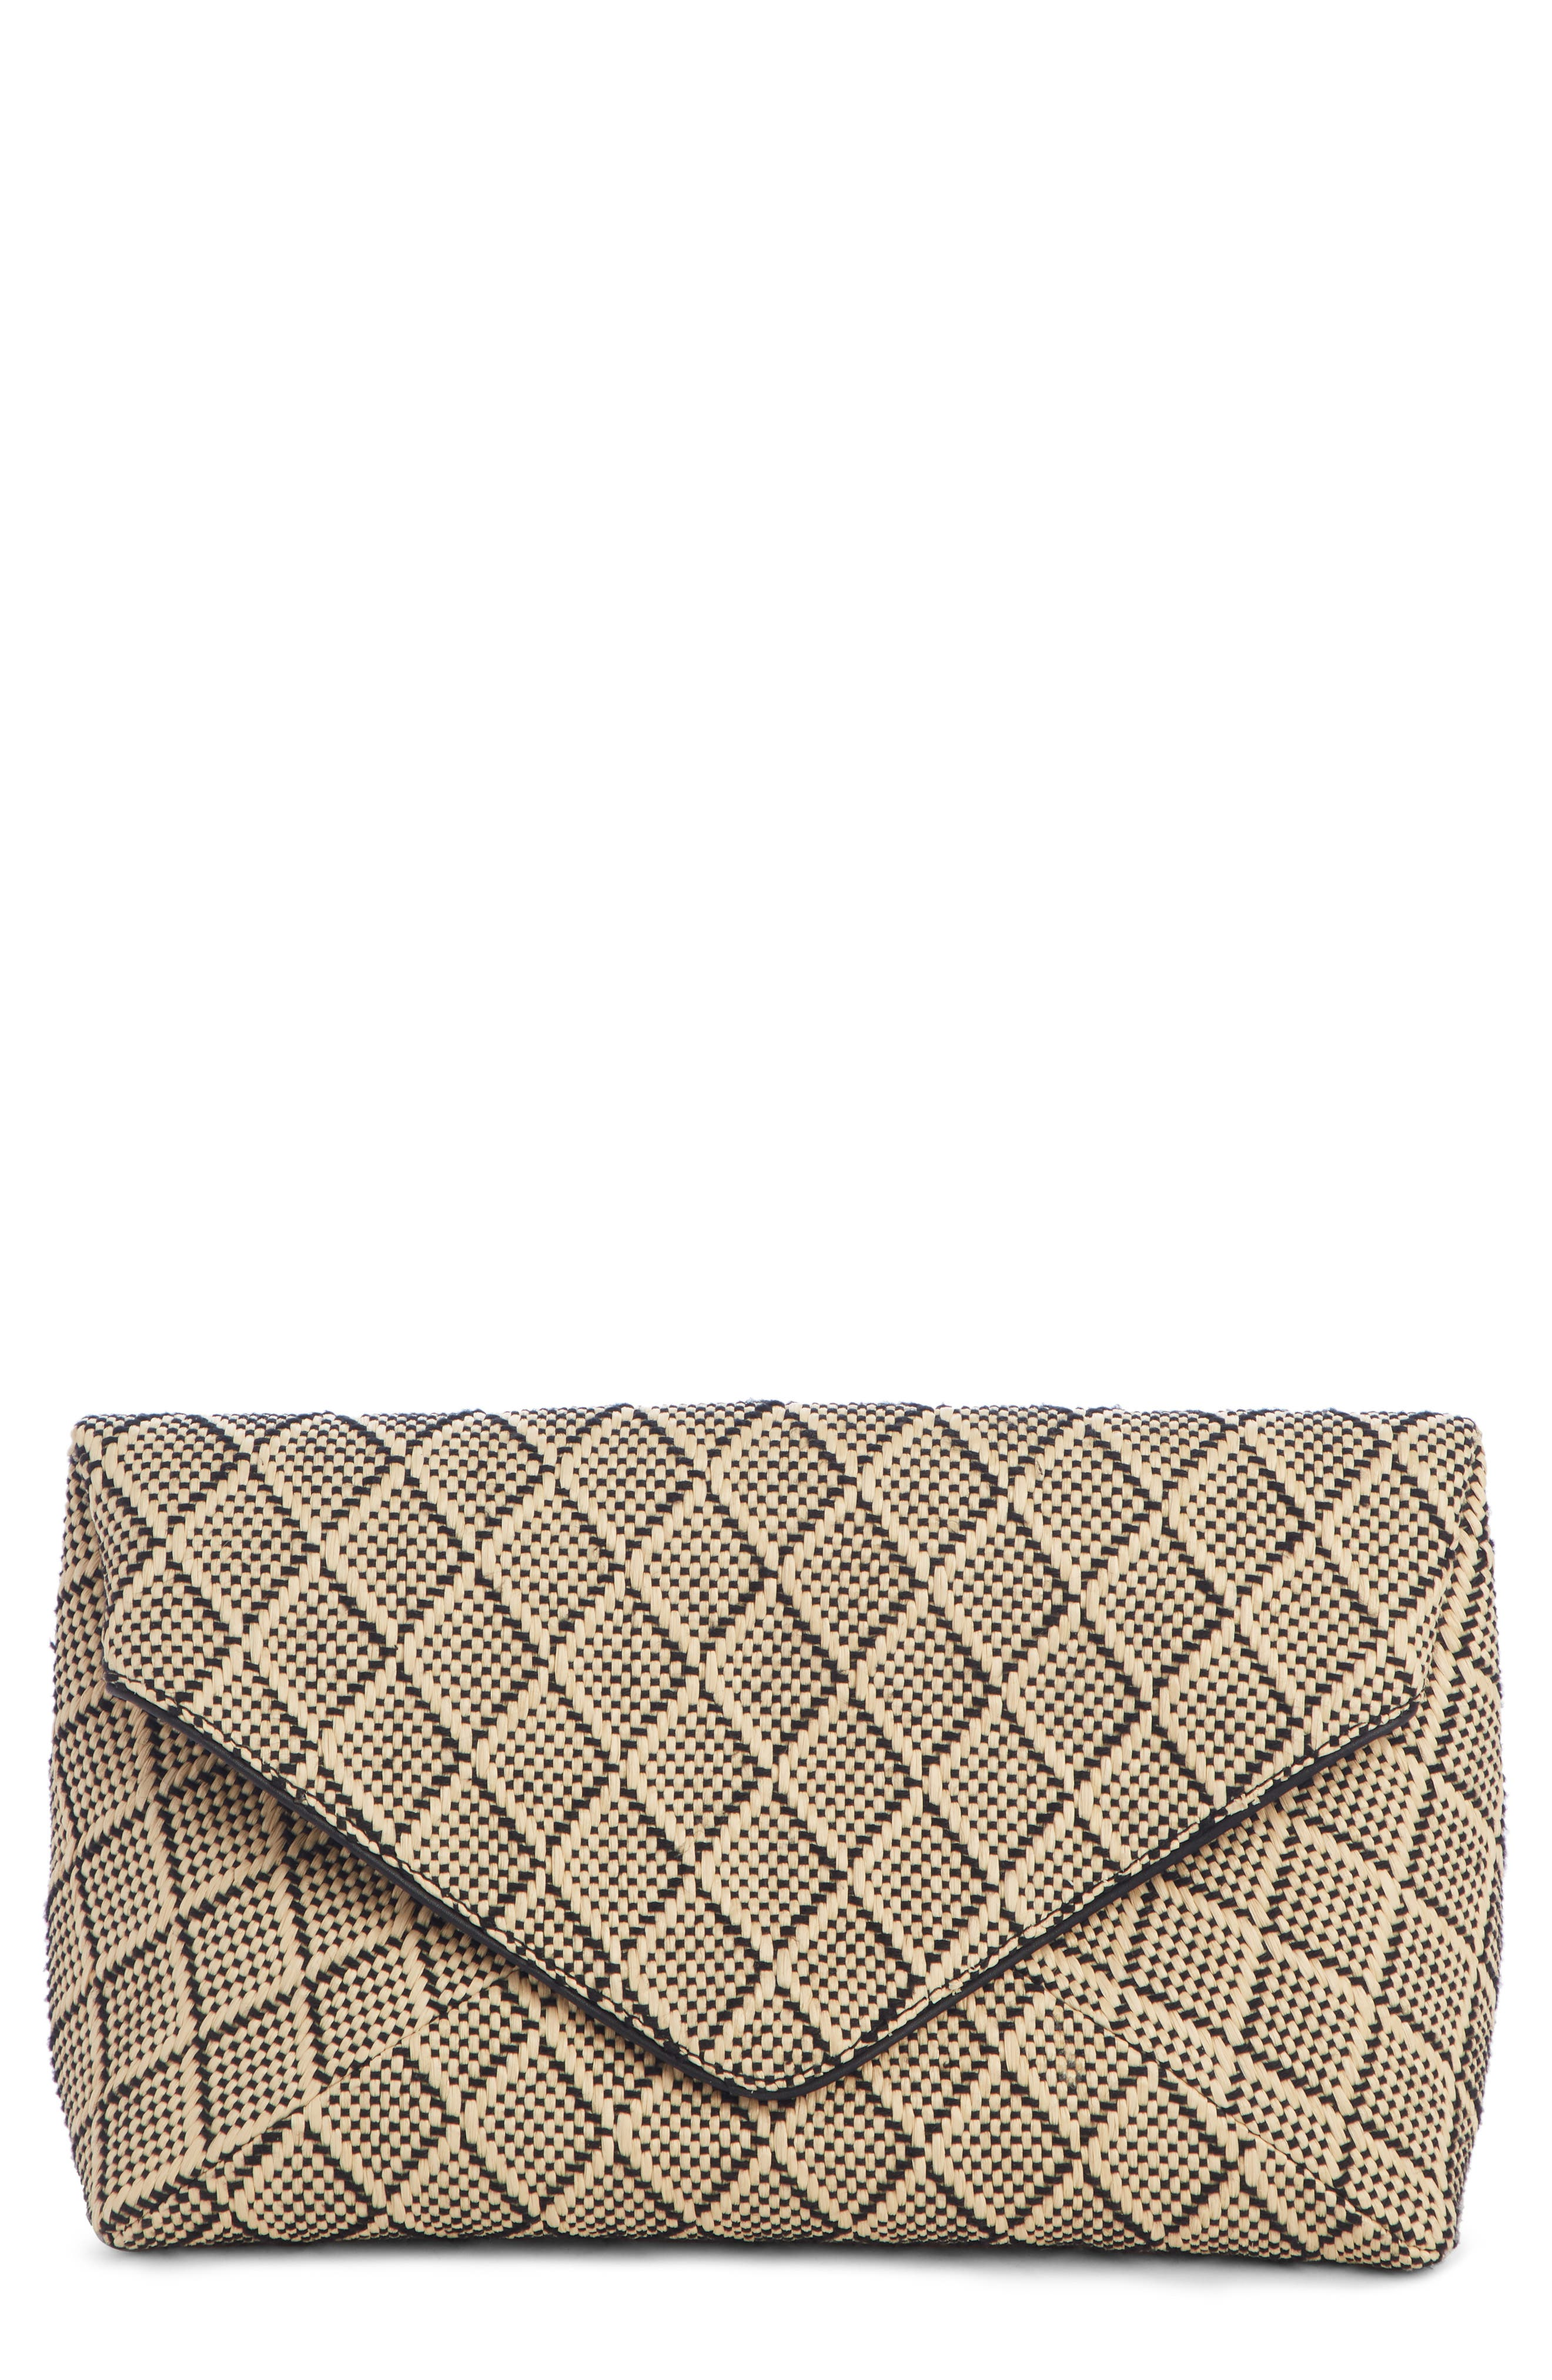 Woven Envelope Clutch - Beige in Natural